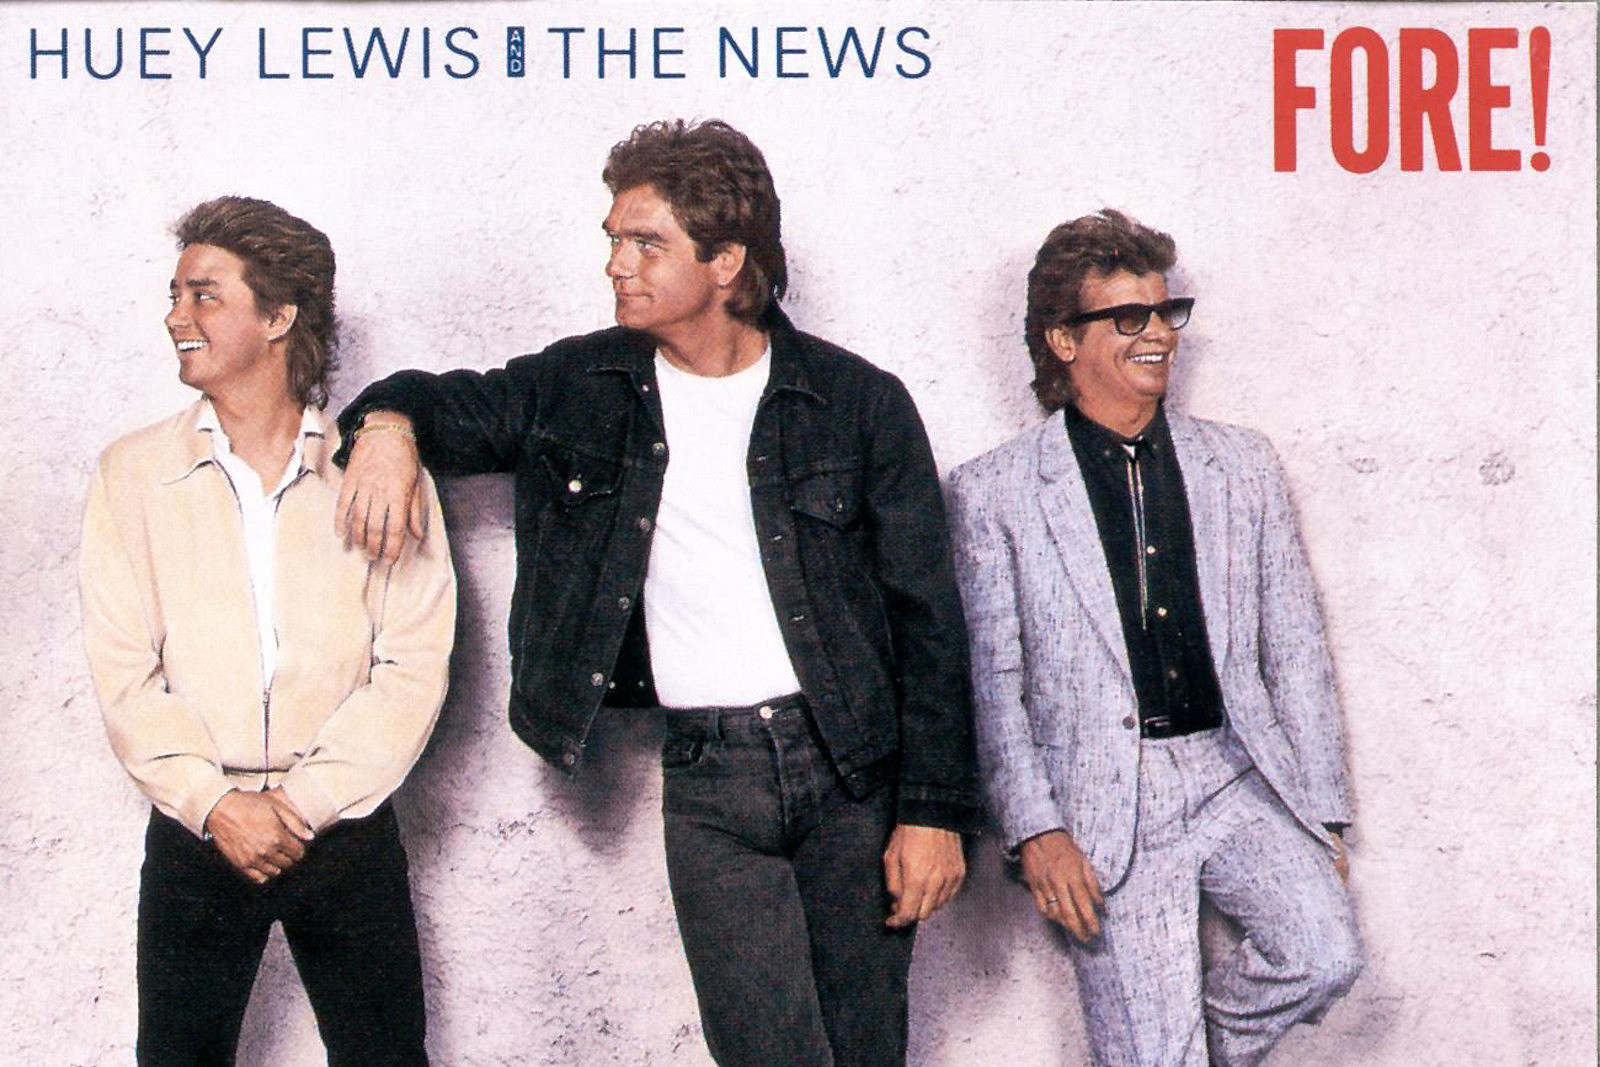 How Huey Lewis Overcame Commercial 'Pressure' for Massive 'Fore!'